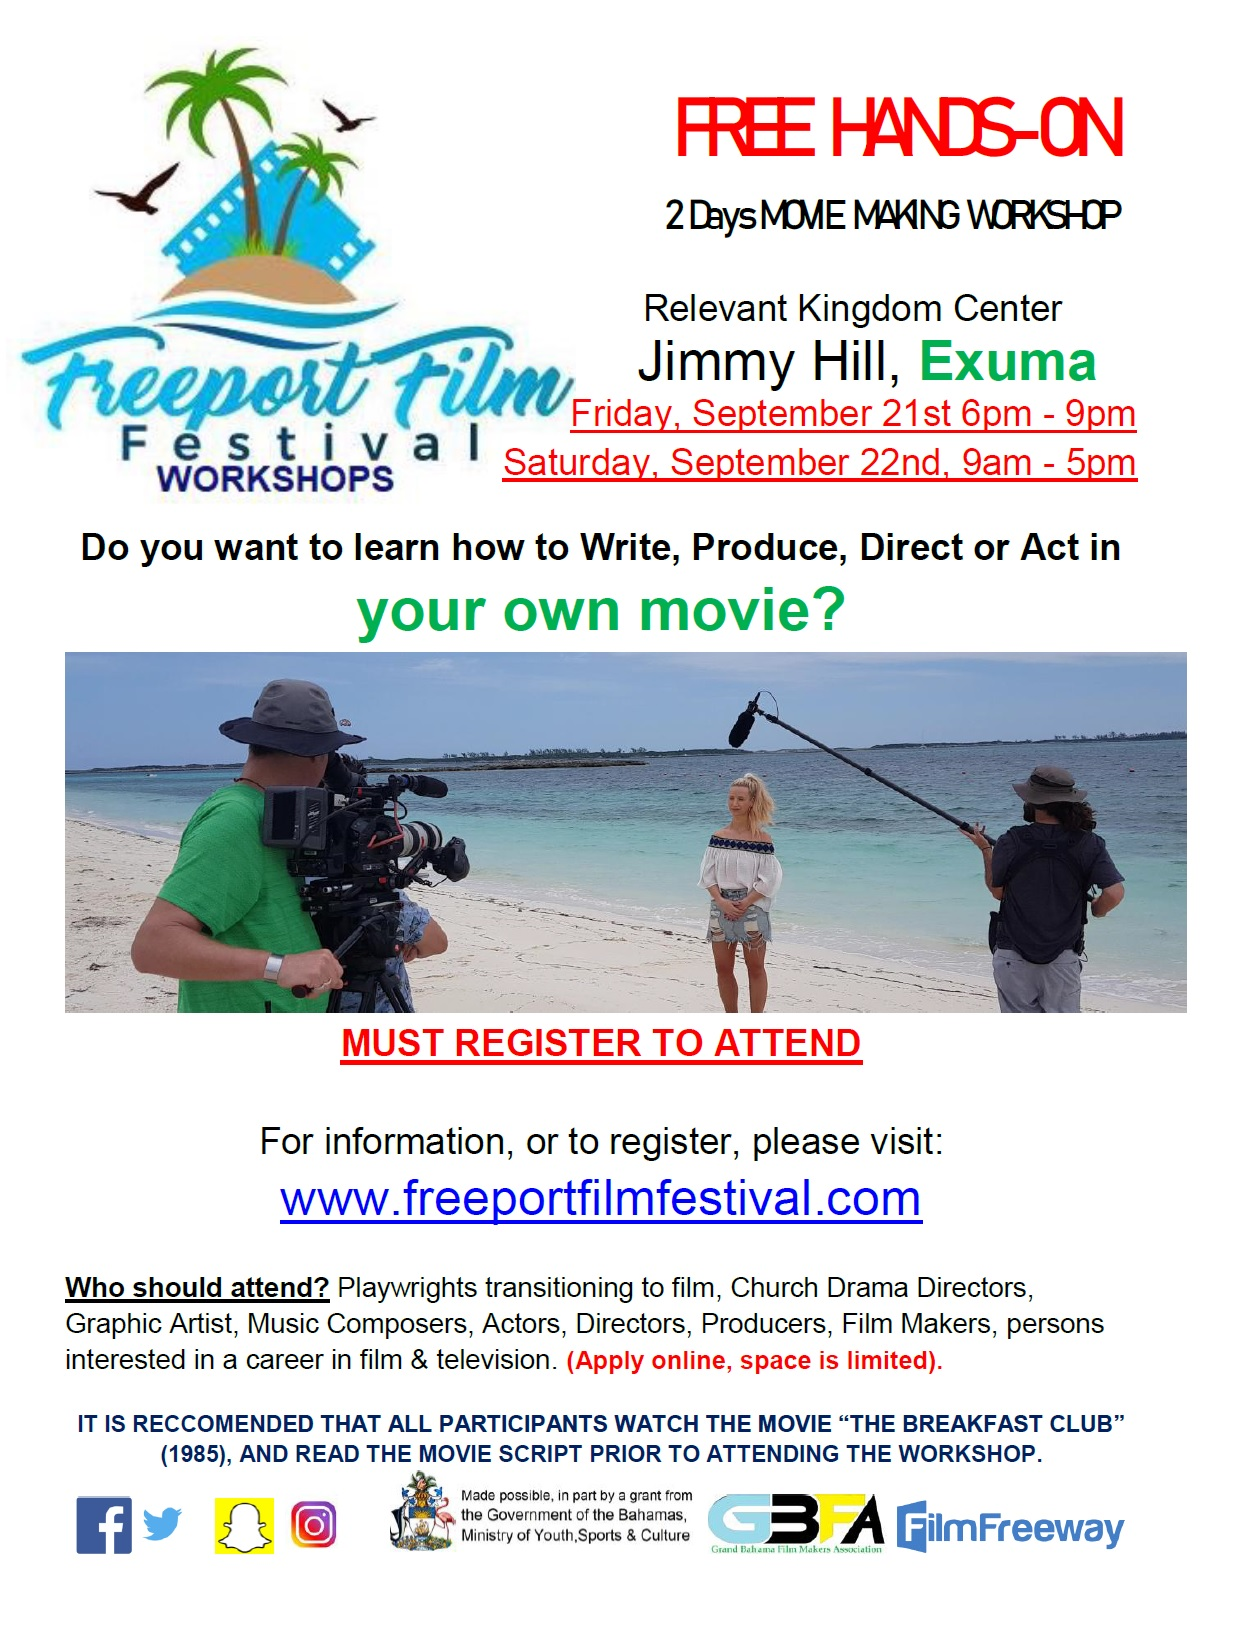 Freeport Film Festival Workshops